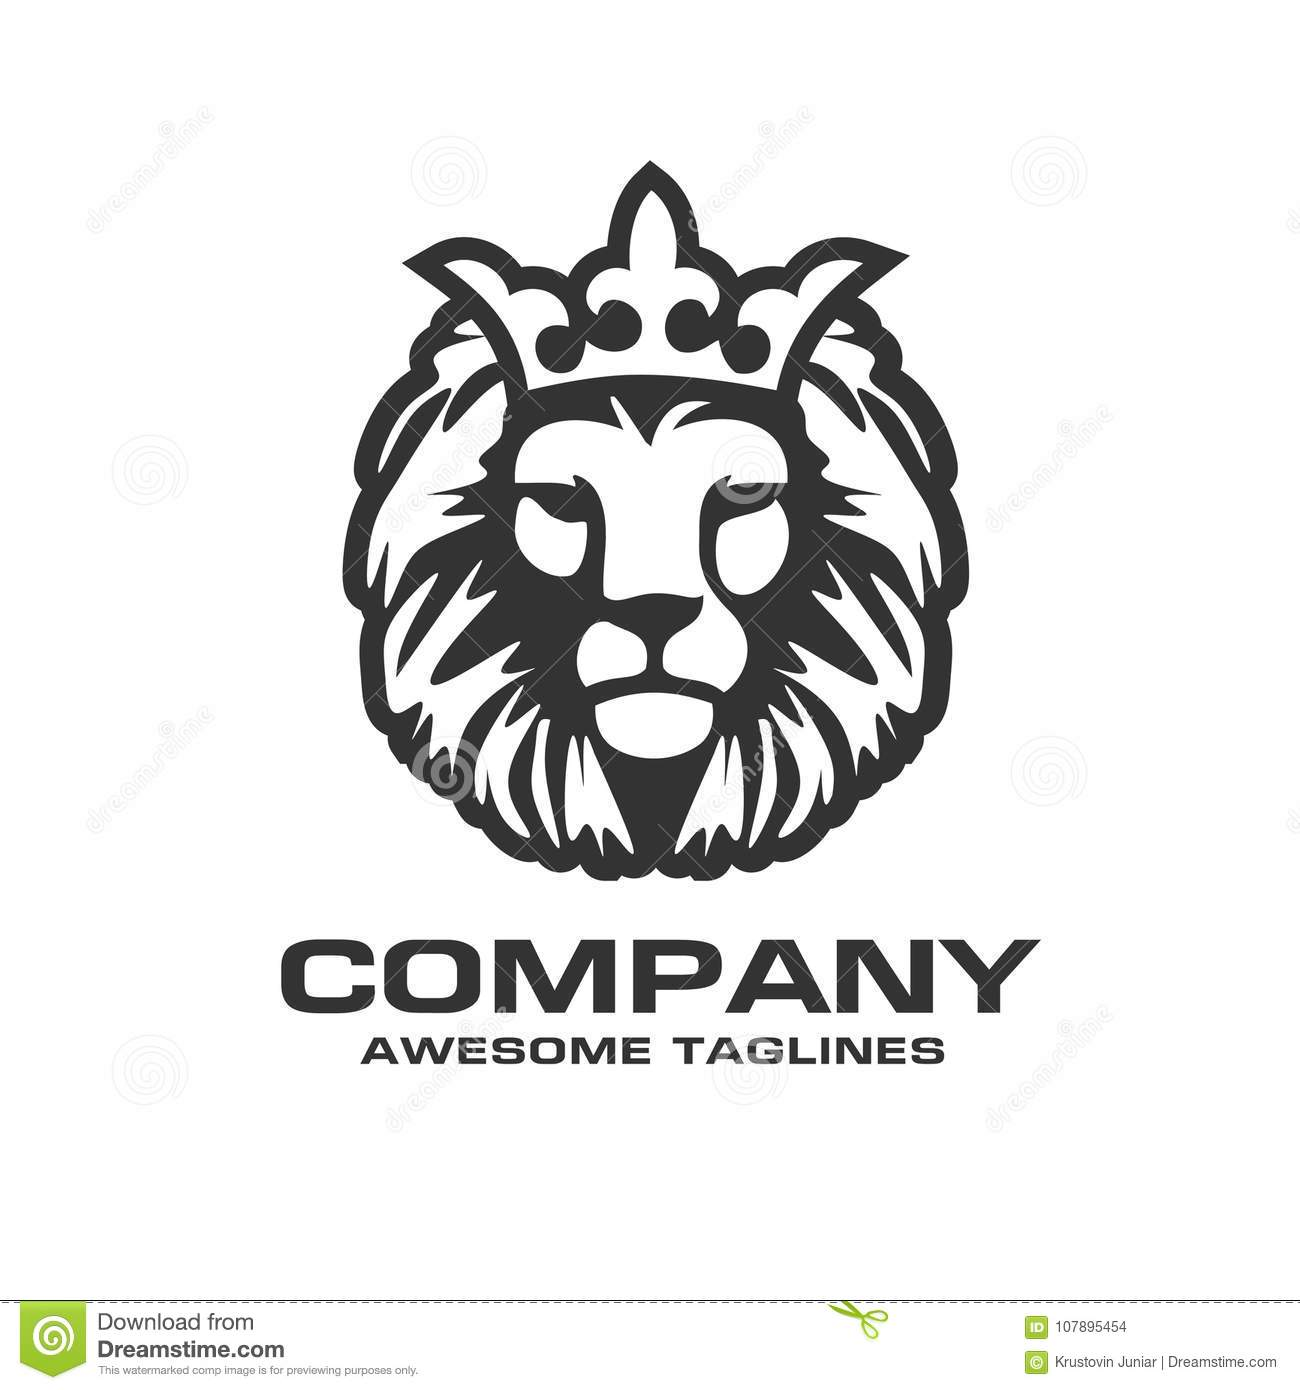 The Head Of A Lion With Royal CrownLion Crown Vector Sign Concept Illustration Kings Logo